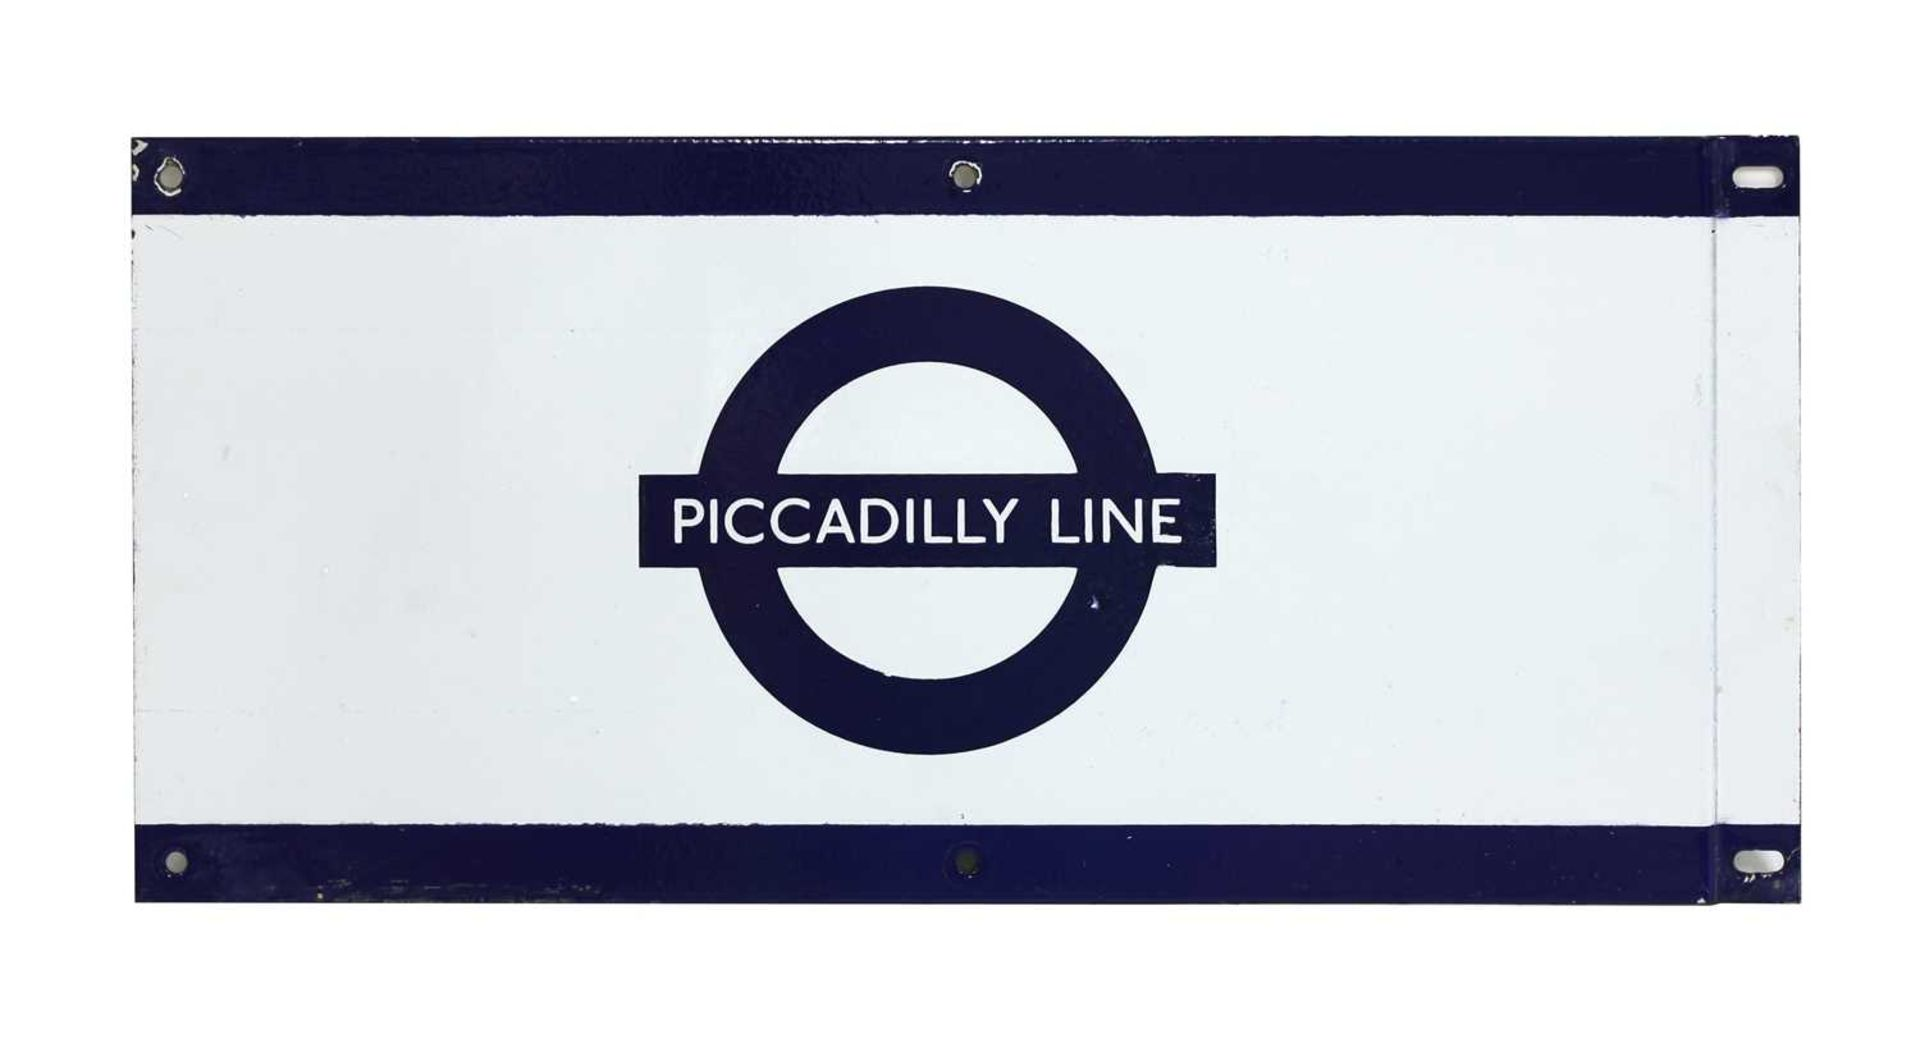 PICCADILLY LINE,